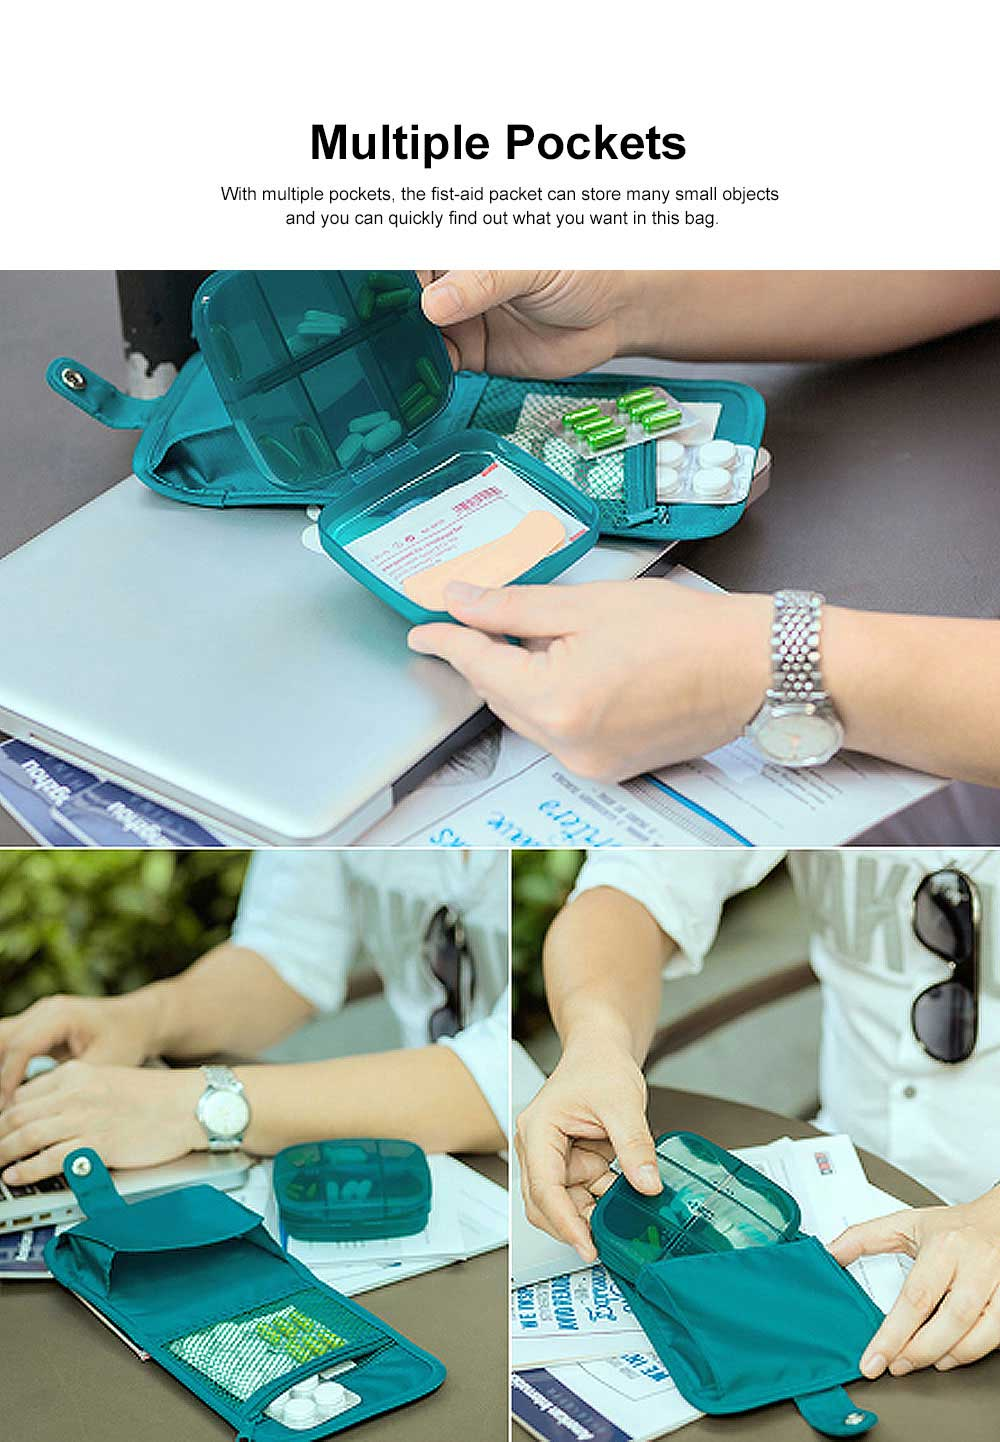 Minimalist Outdoor Moisture-proof Pill Case Box with Nylon First-aid Packet, 6 Separate Compartments Waterproof Medicine Storage Organizer Case 1